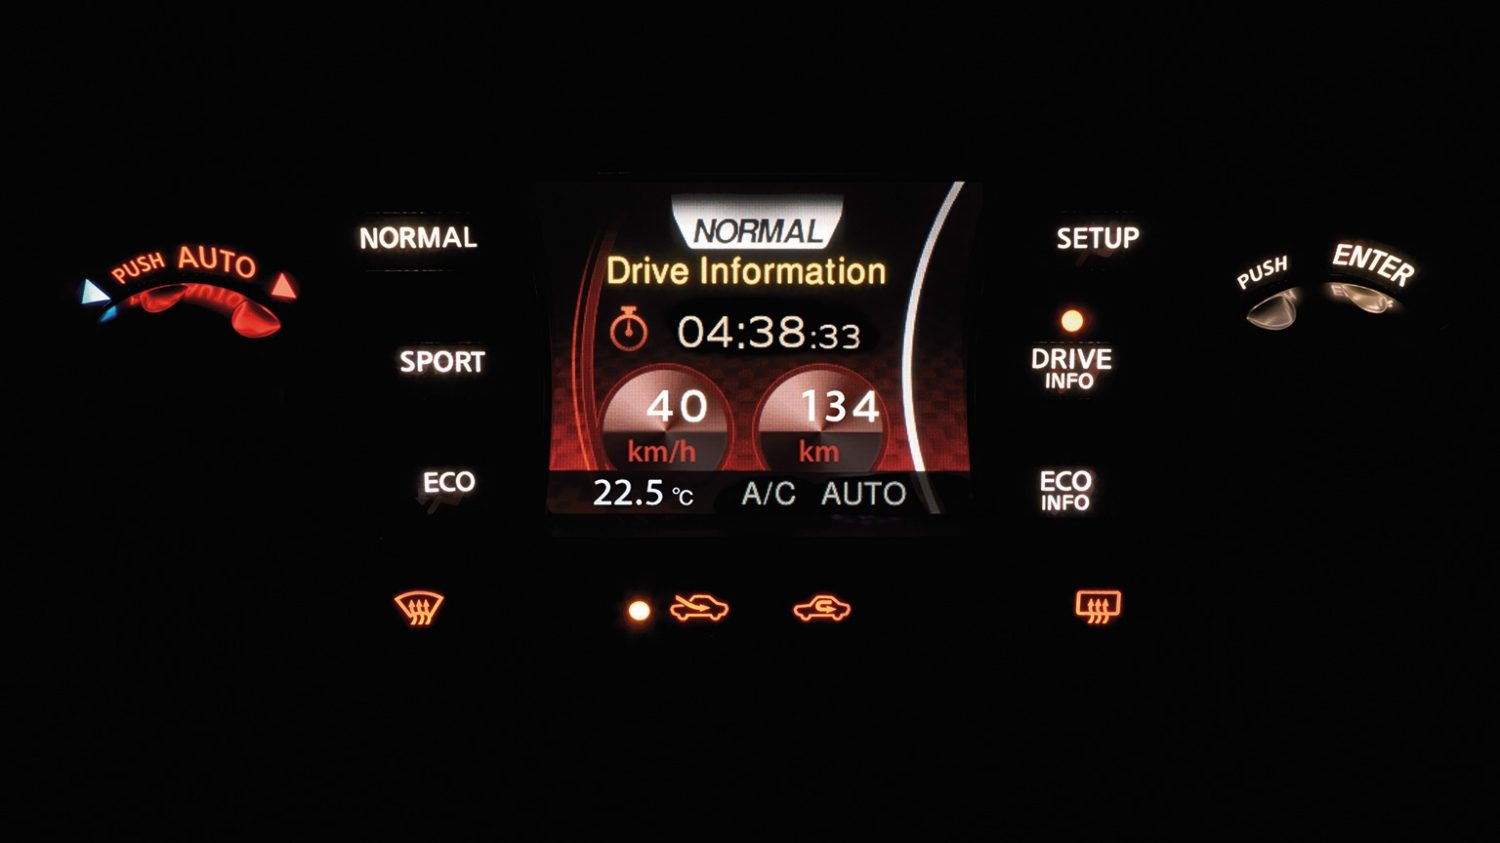 Drive information